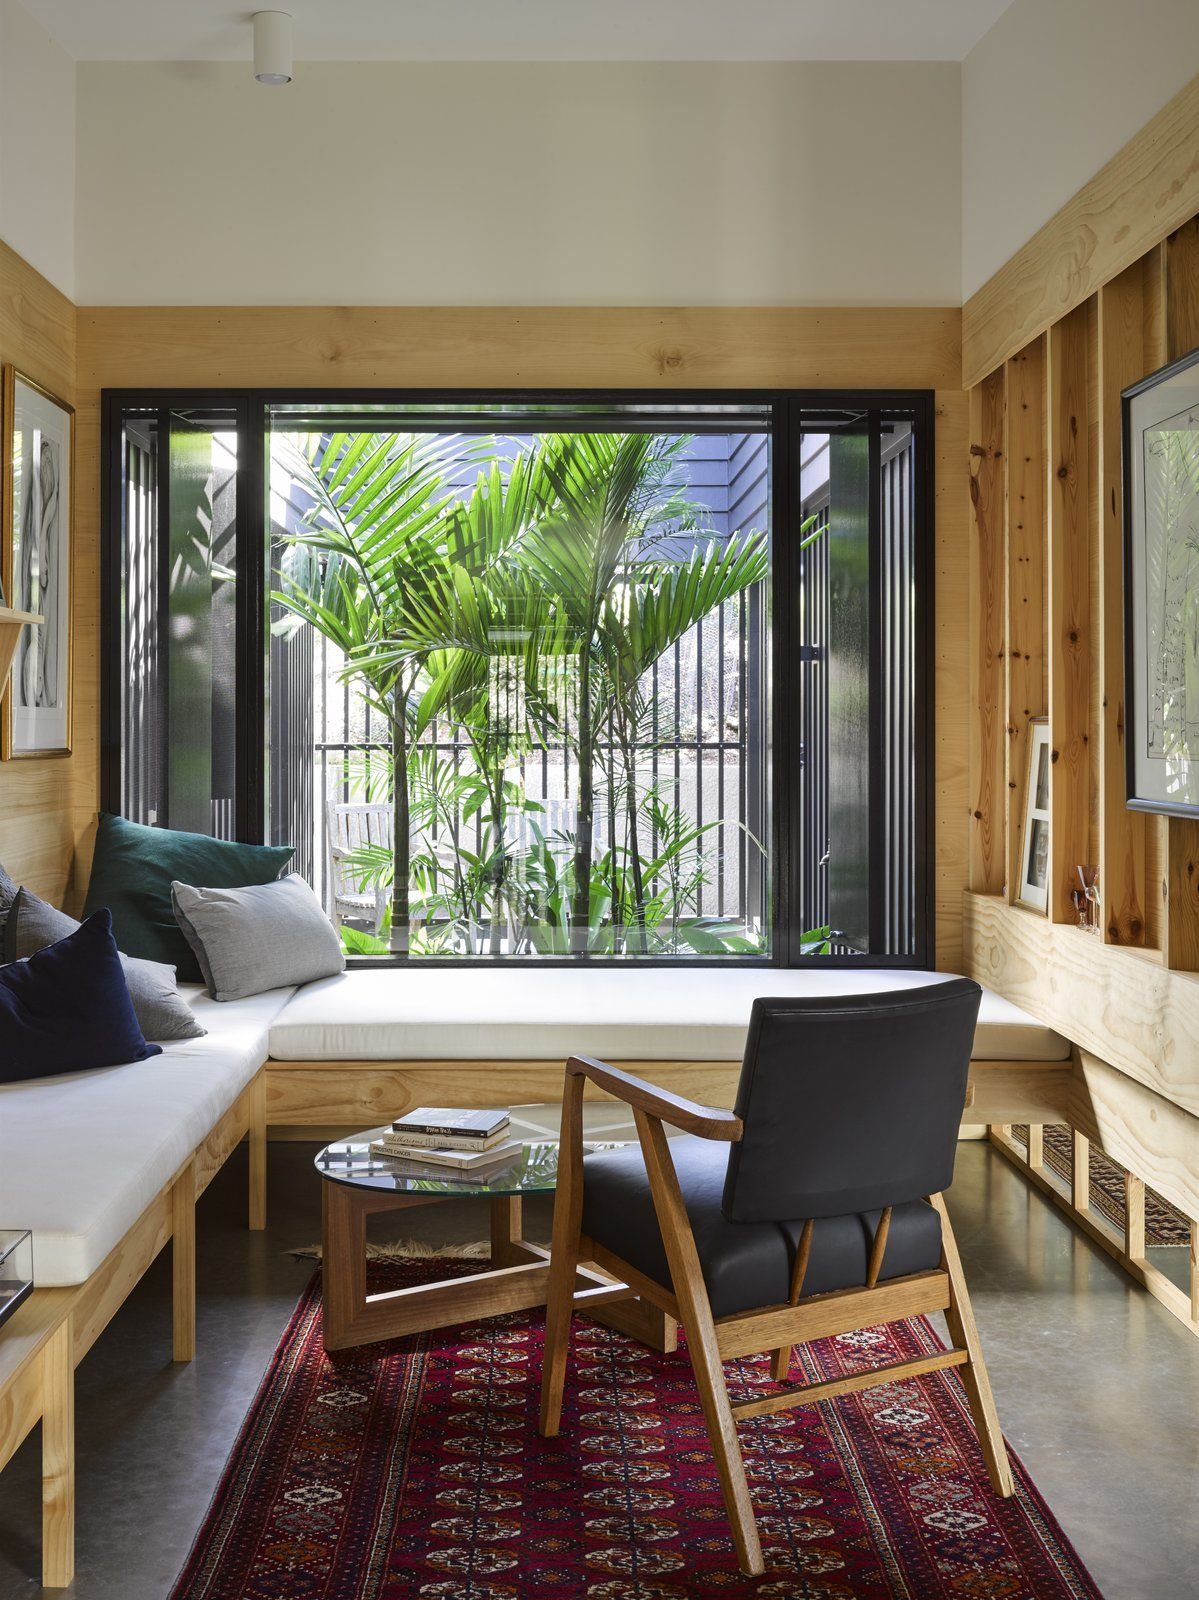 Byron bay house vokes and peters alcove also photo of in book lovers bookmark this australian home designed rh pinterest